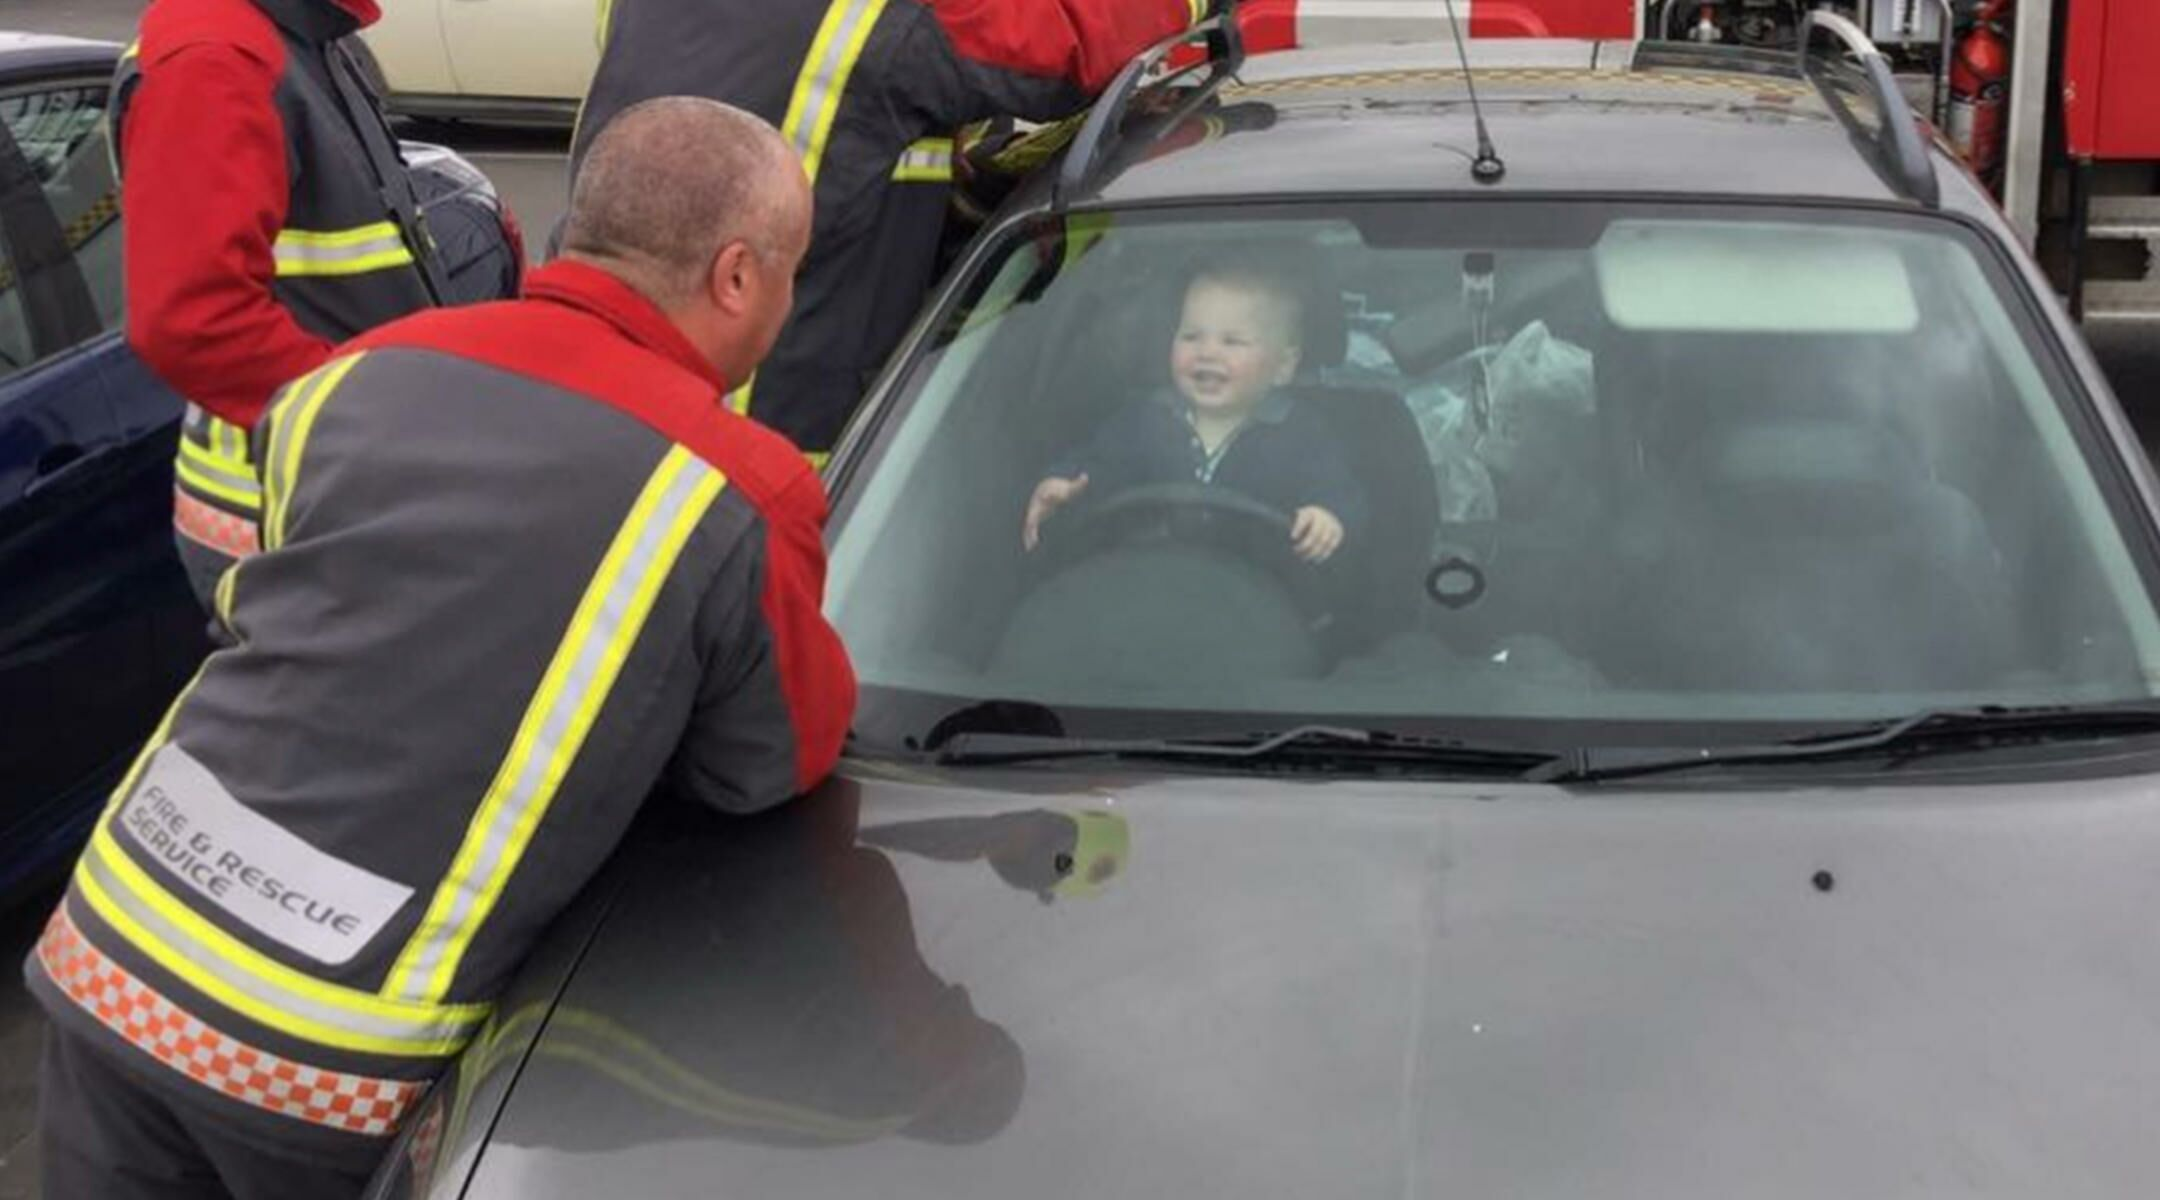 Firefighters Rescuing A Grinning Toddler Boy From Car